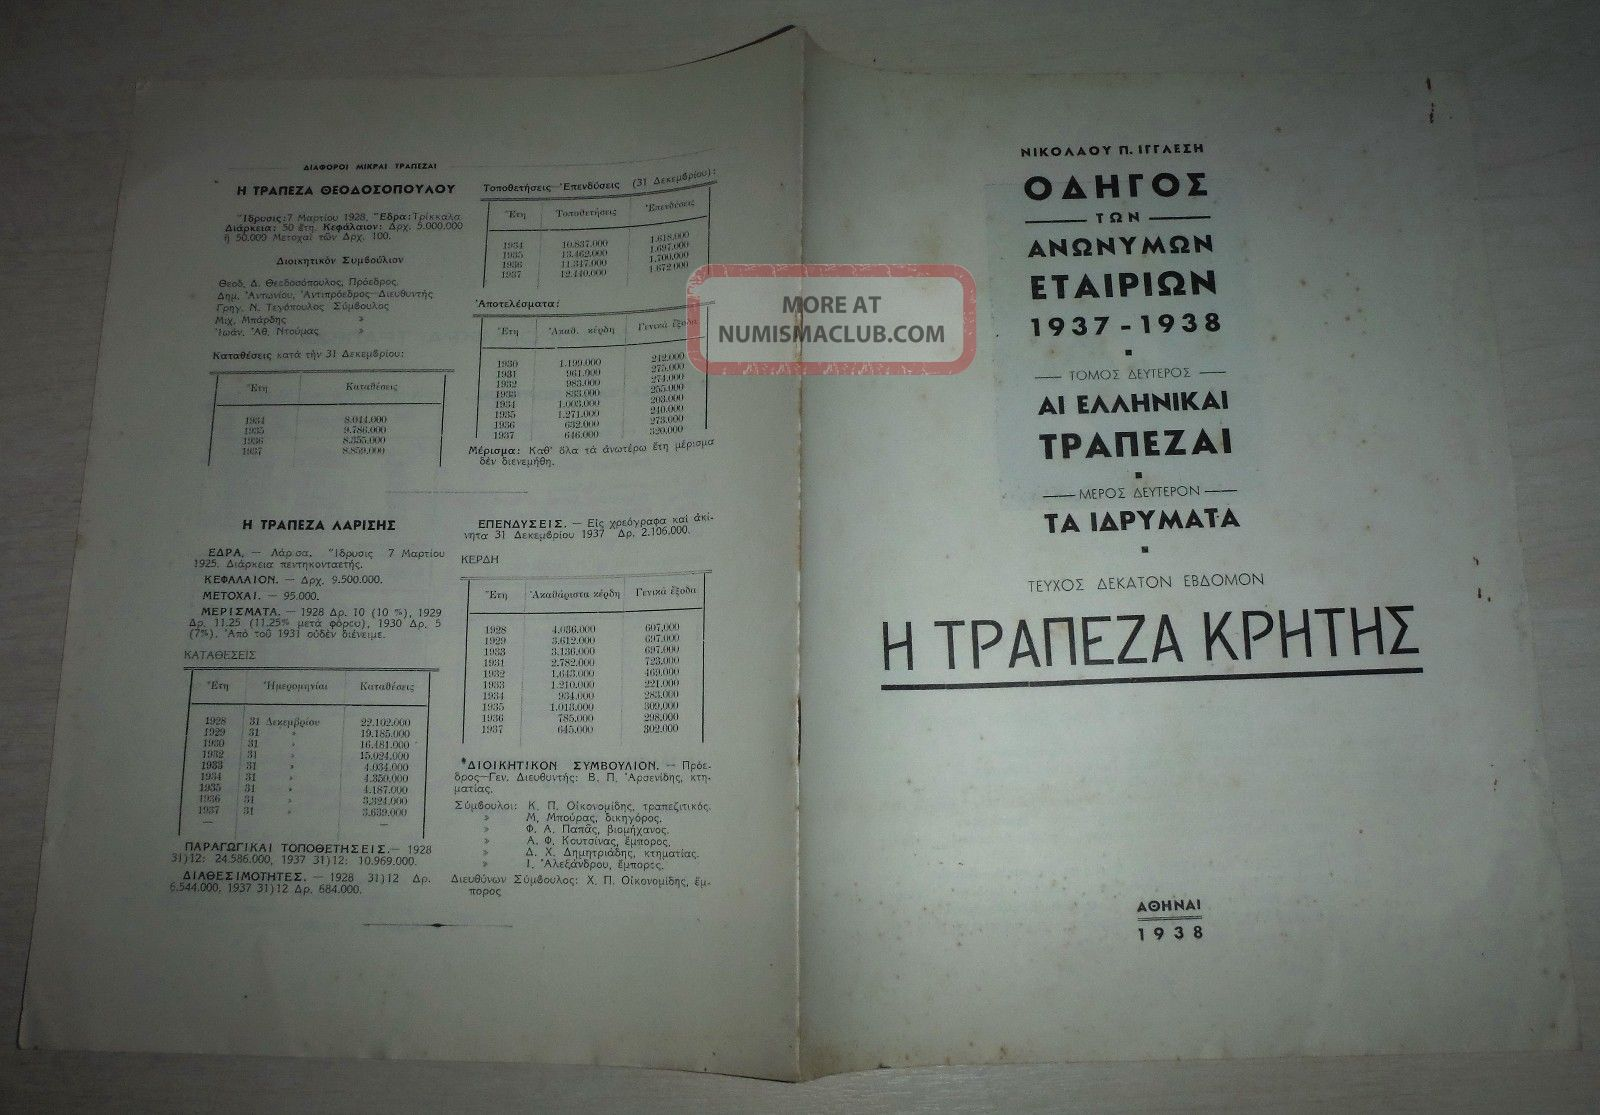 Bank Of Crete 1938 & 1955 Publications - Full Issues X 2 - The History,  Role,  Etc Stocks & Bonds, Scripophily photo